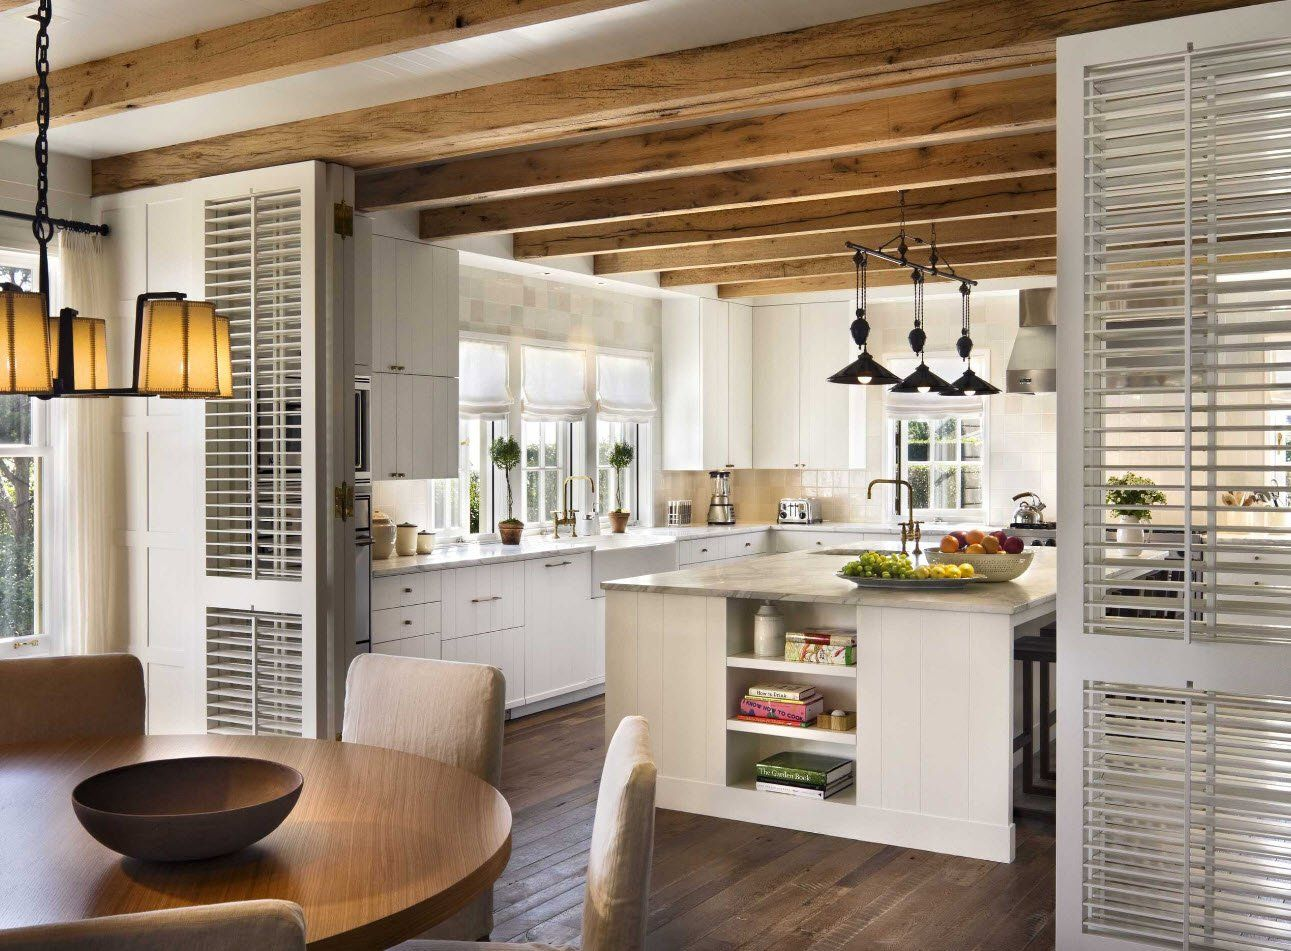 Open ceiling beams in the modern kitchen